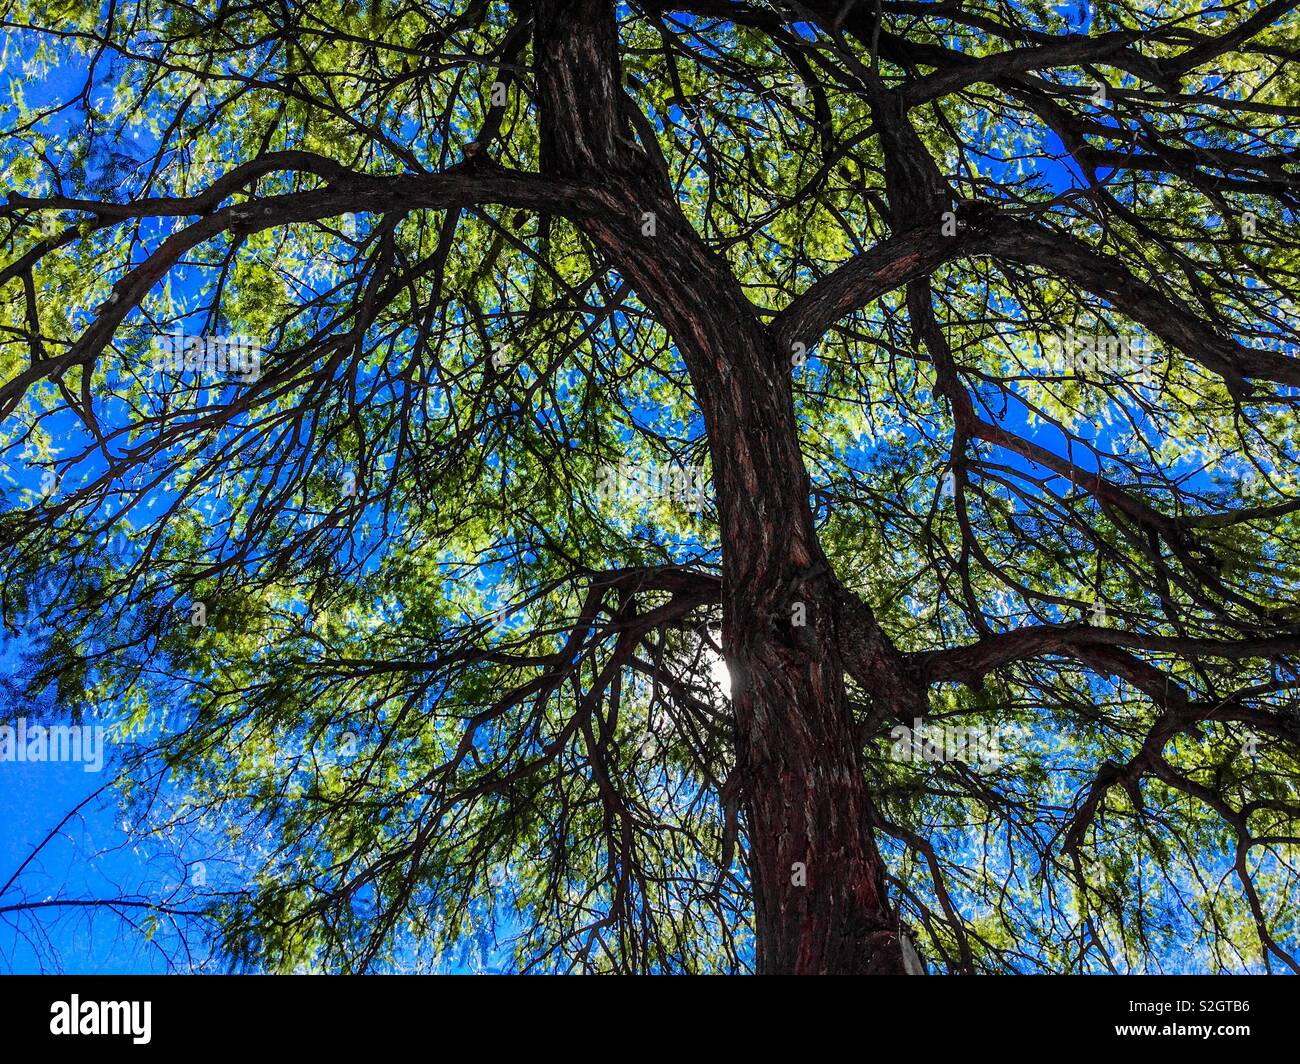 Green tree showing bark in detail against a vivid blue sky. - Stock Image